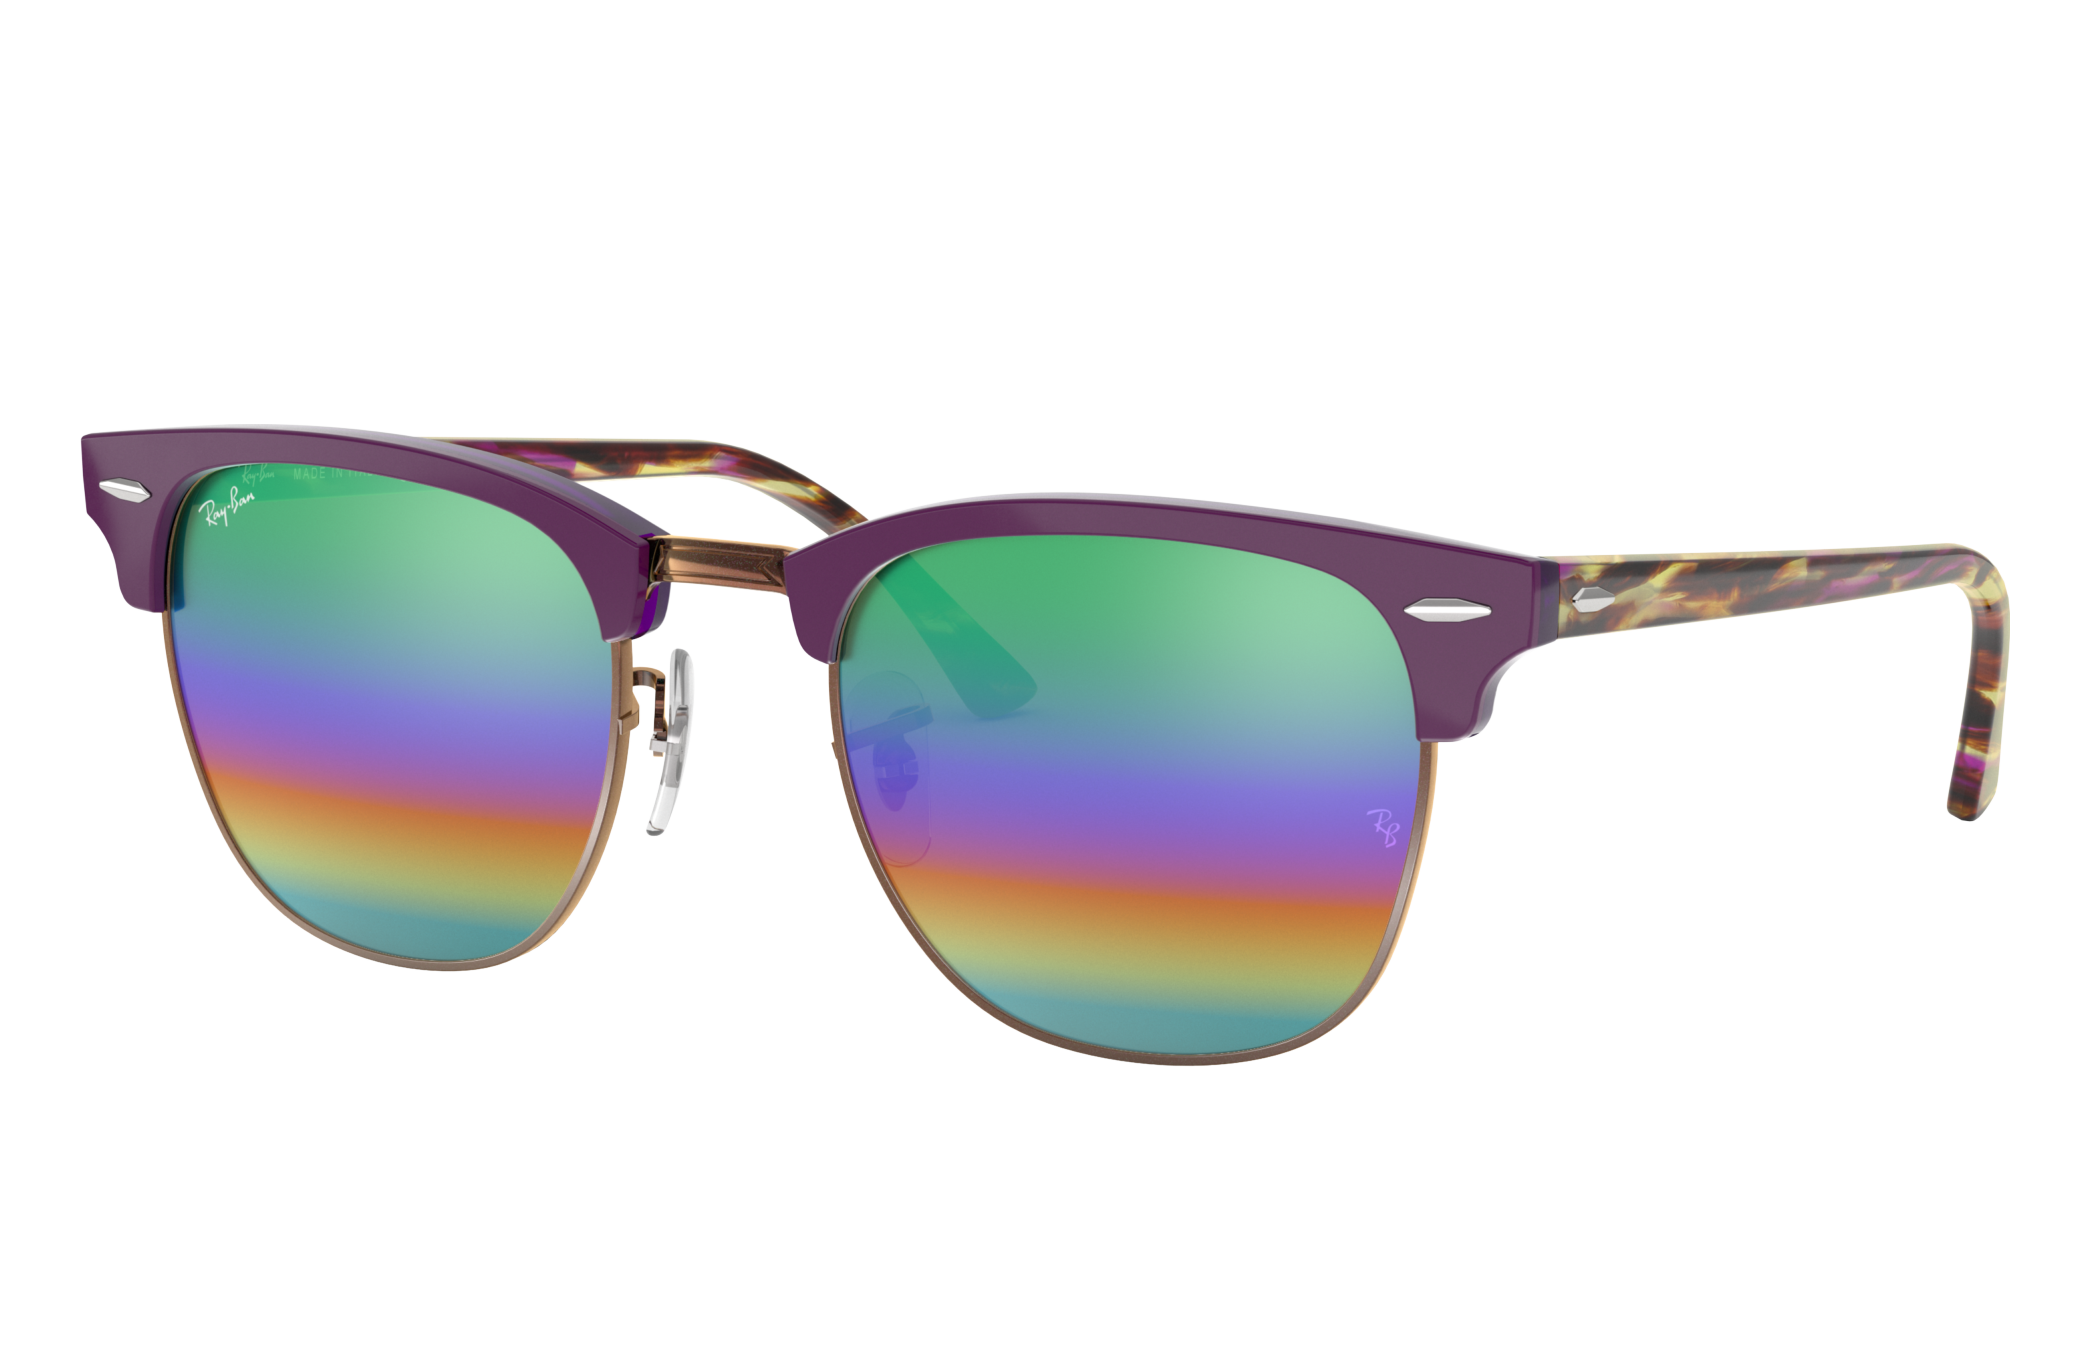 Ray-Ban Clubmaster Mineral Flash Lenses Violet, Green Lenses - RB3016